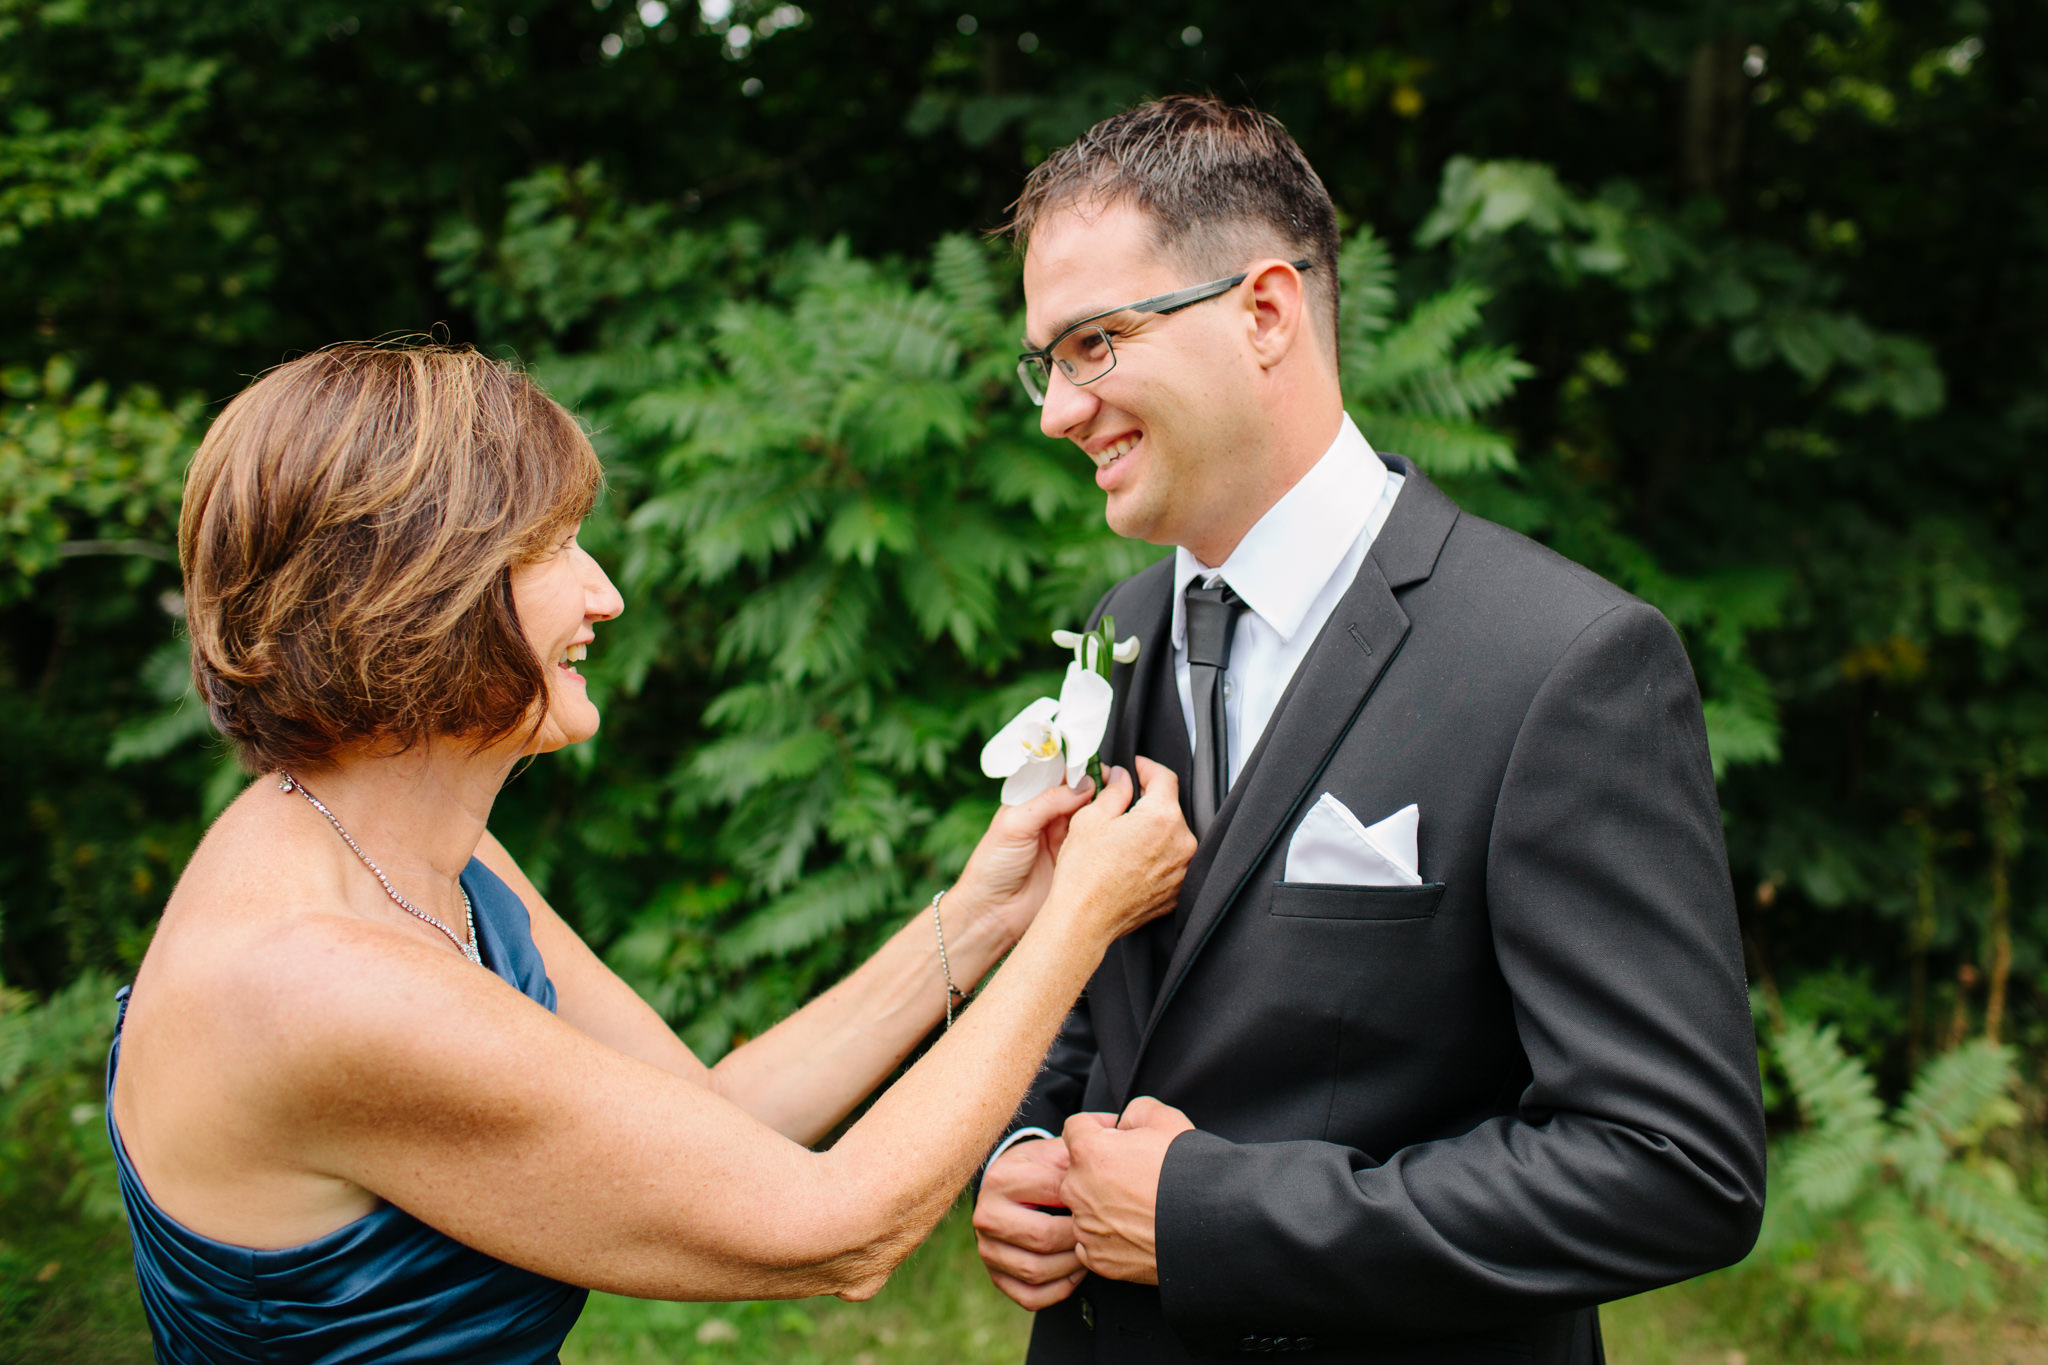 mother of groom putting on boutineer